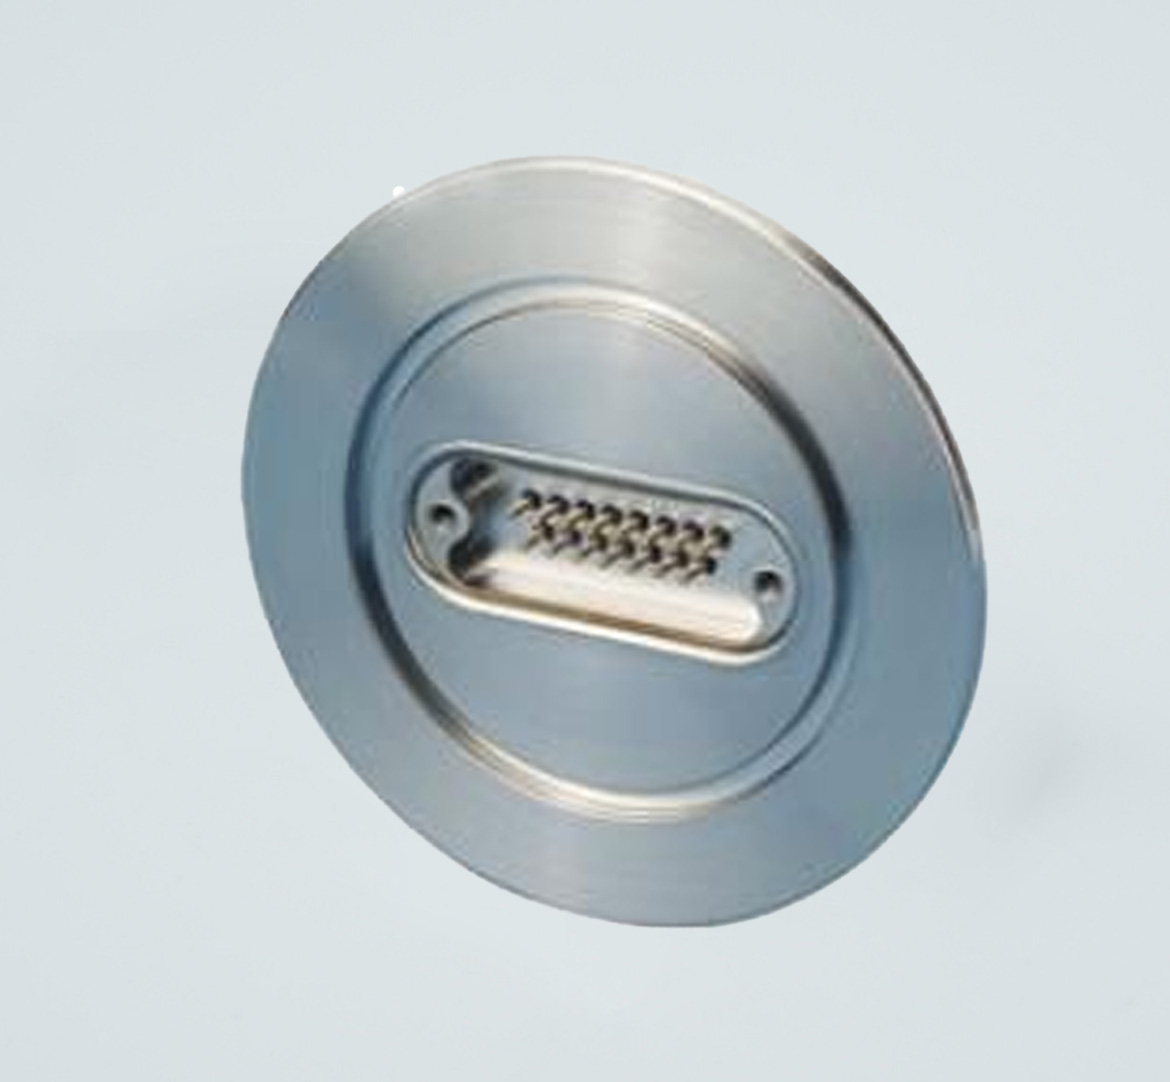 D-type subminiature feedthrough one-15-pin on DN50KF flange